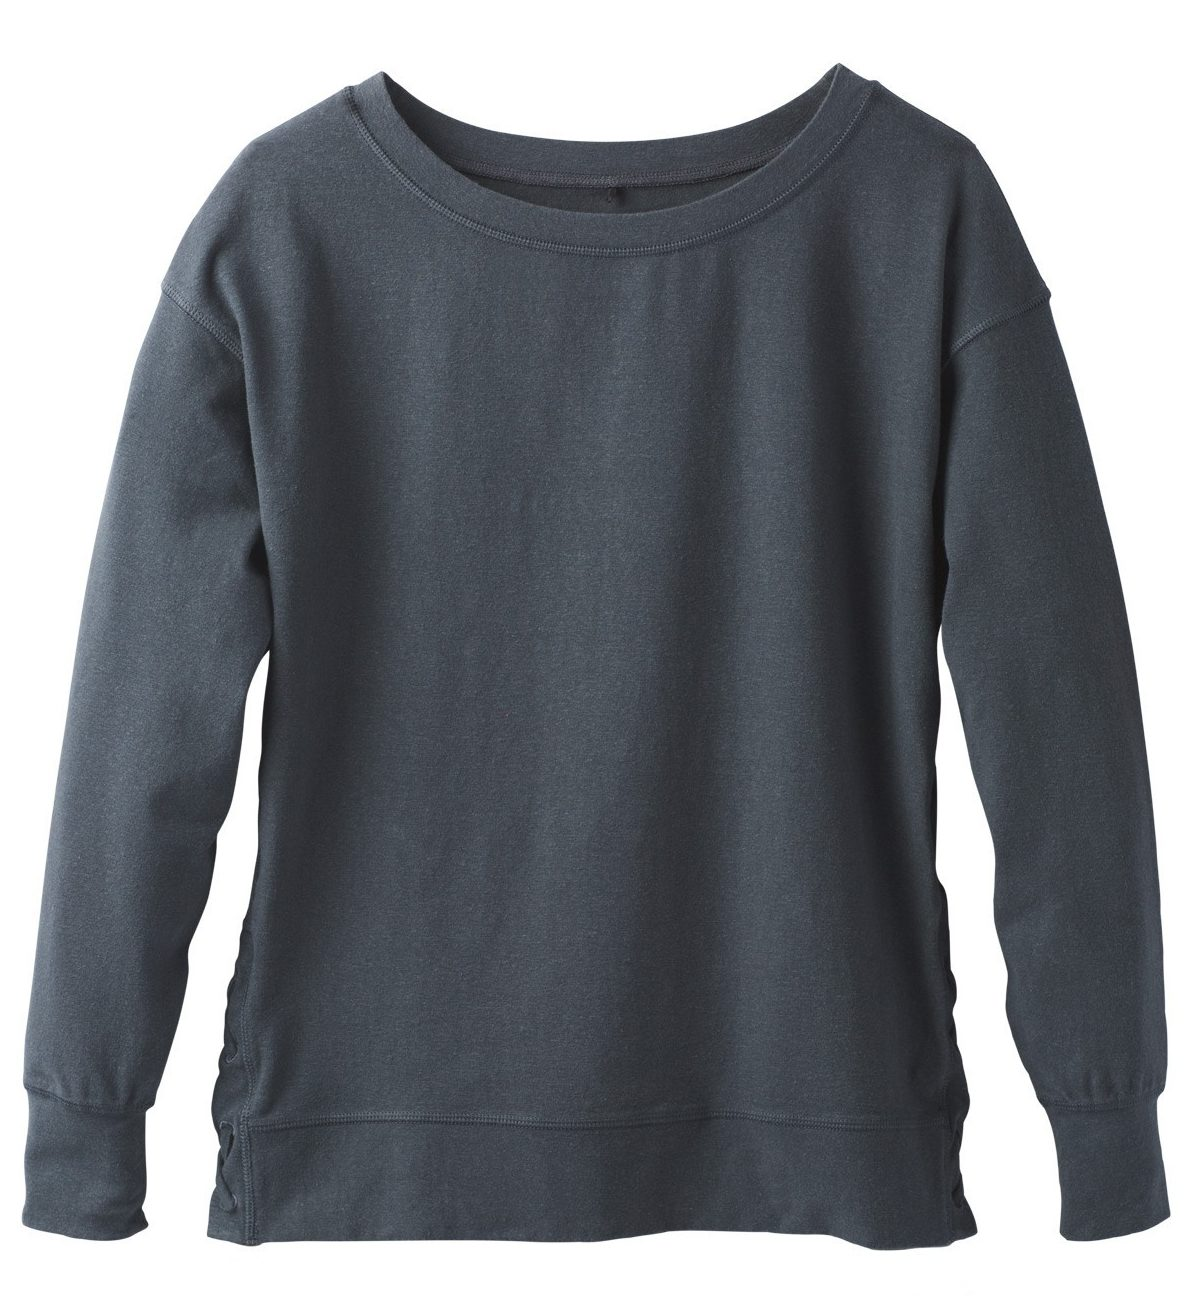 prana ostra top in charcoal gray